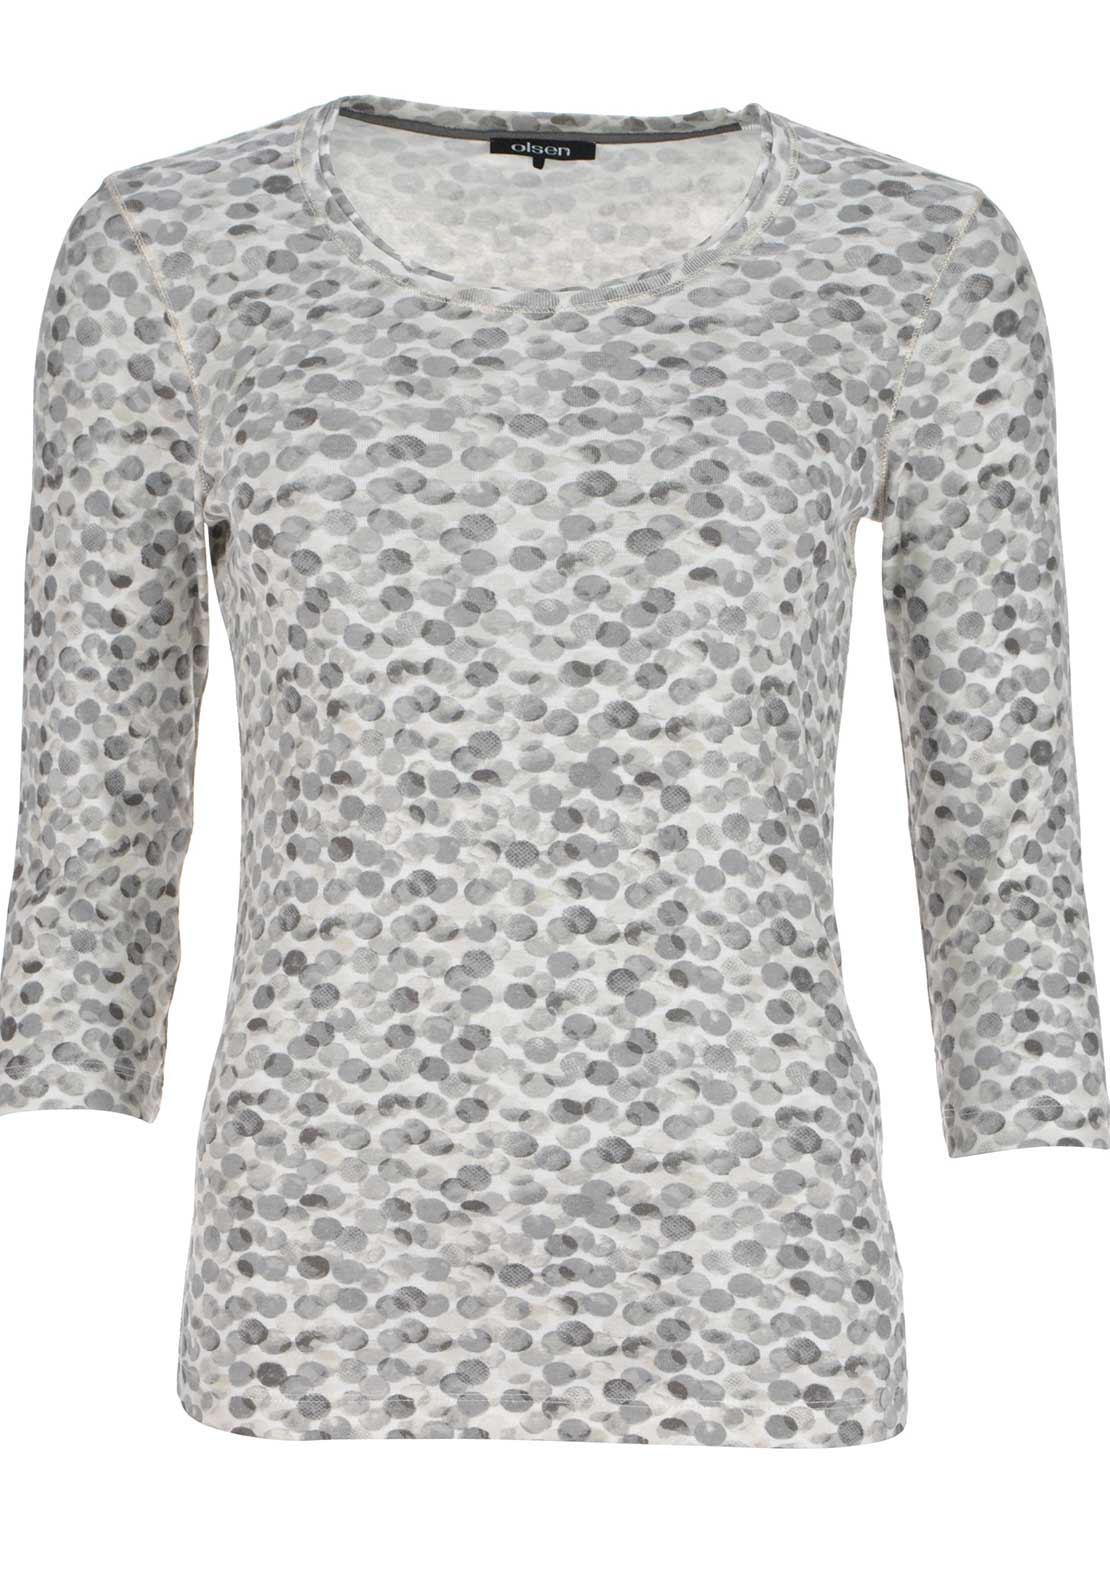 Olsen Circle Print Cropped Sleeve Top, Grey